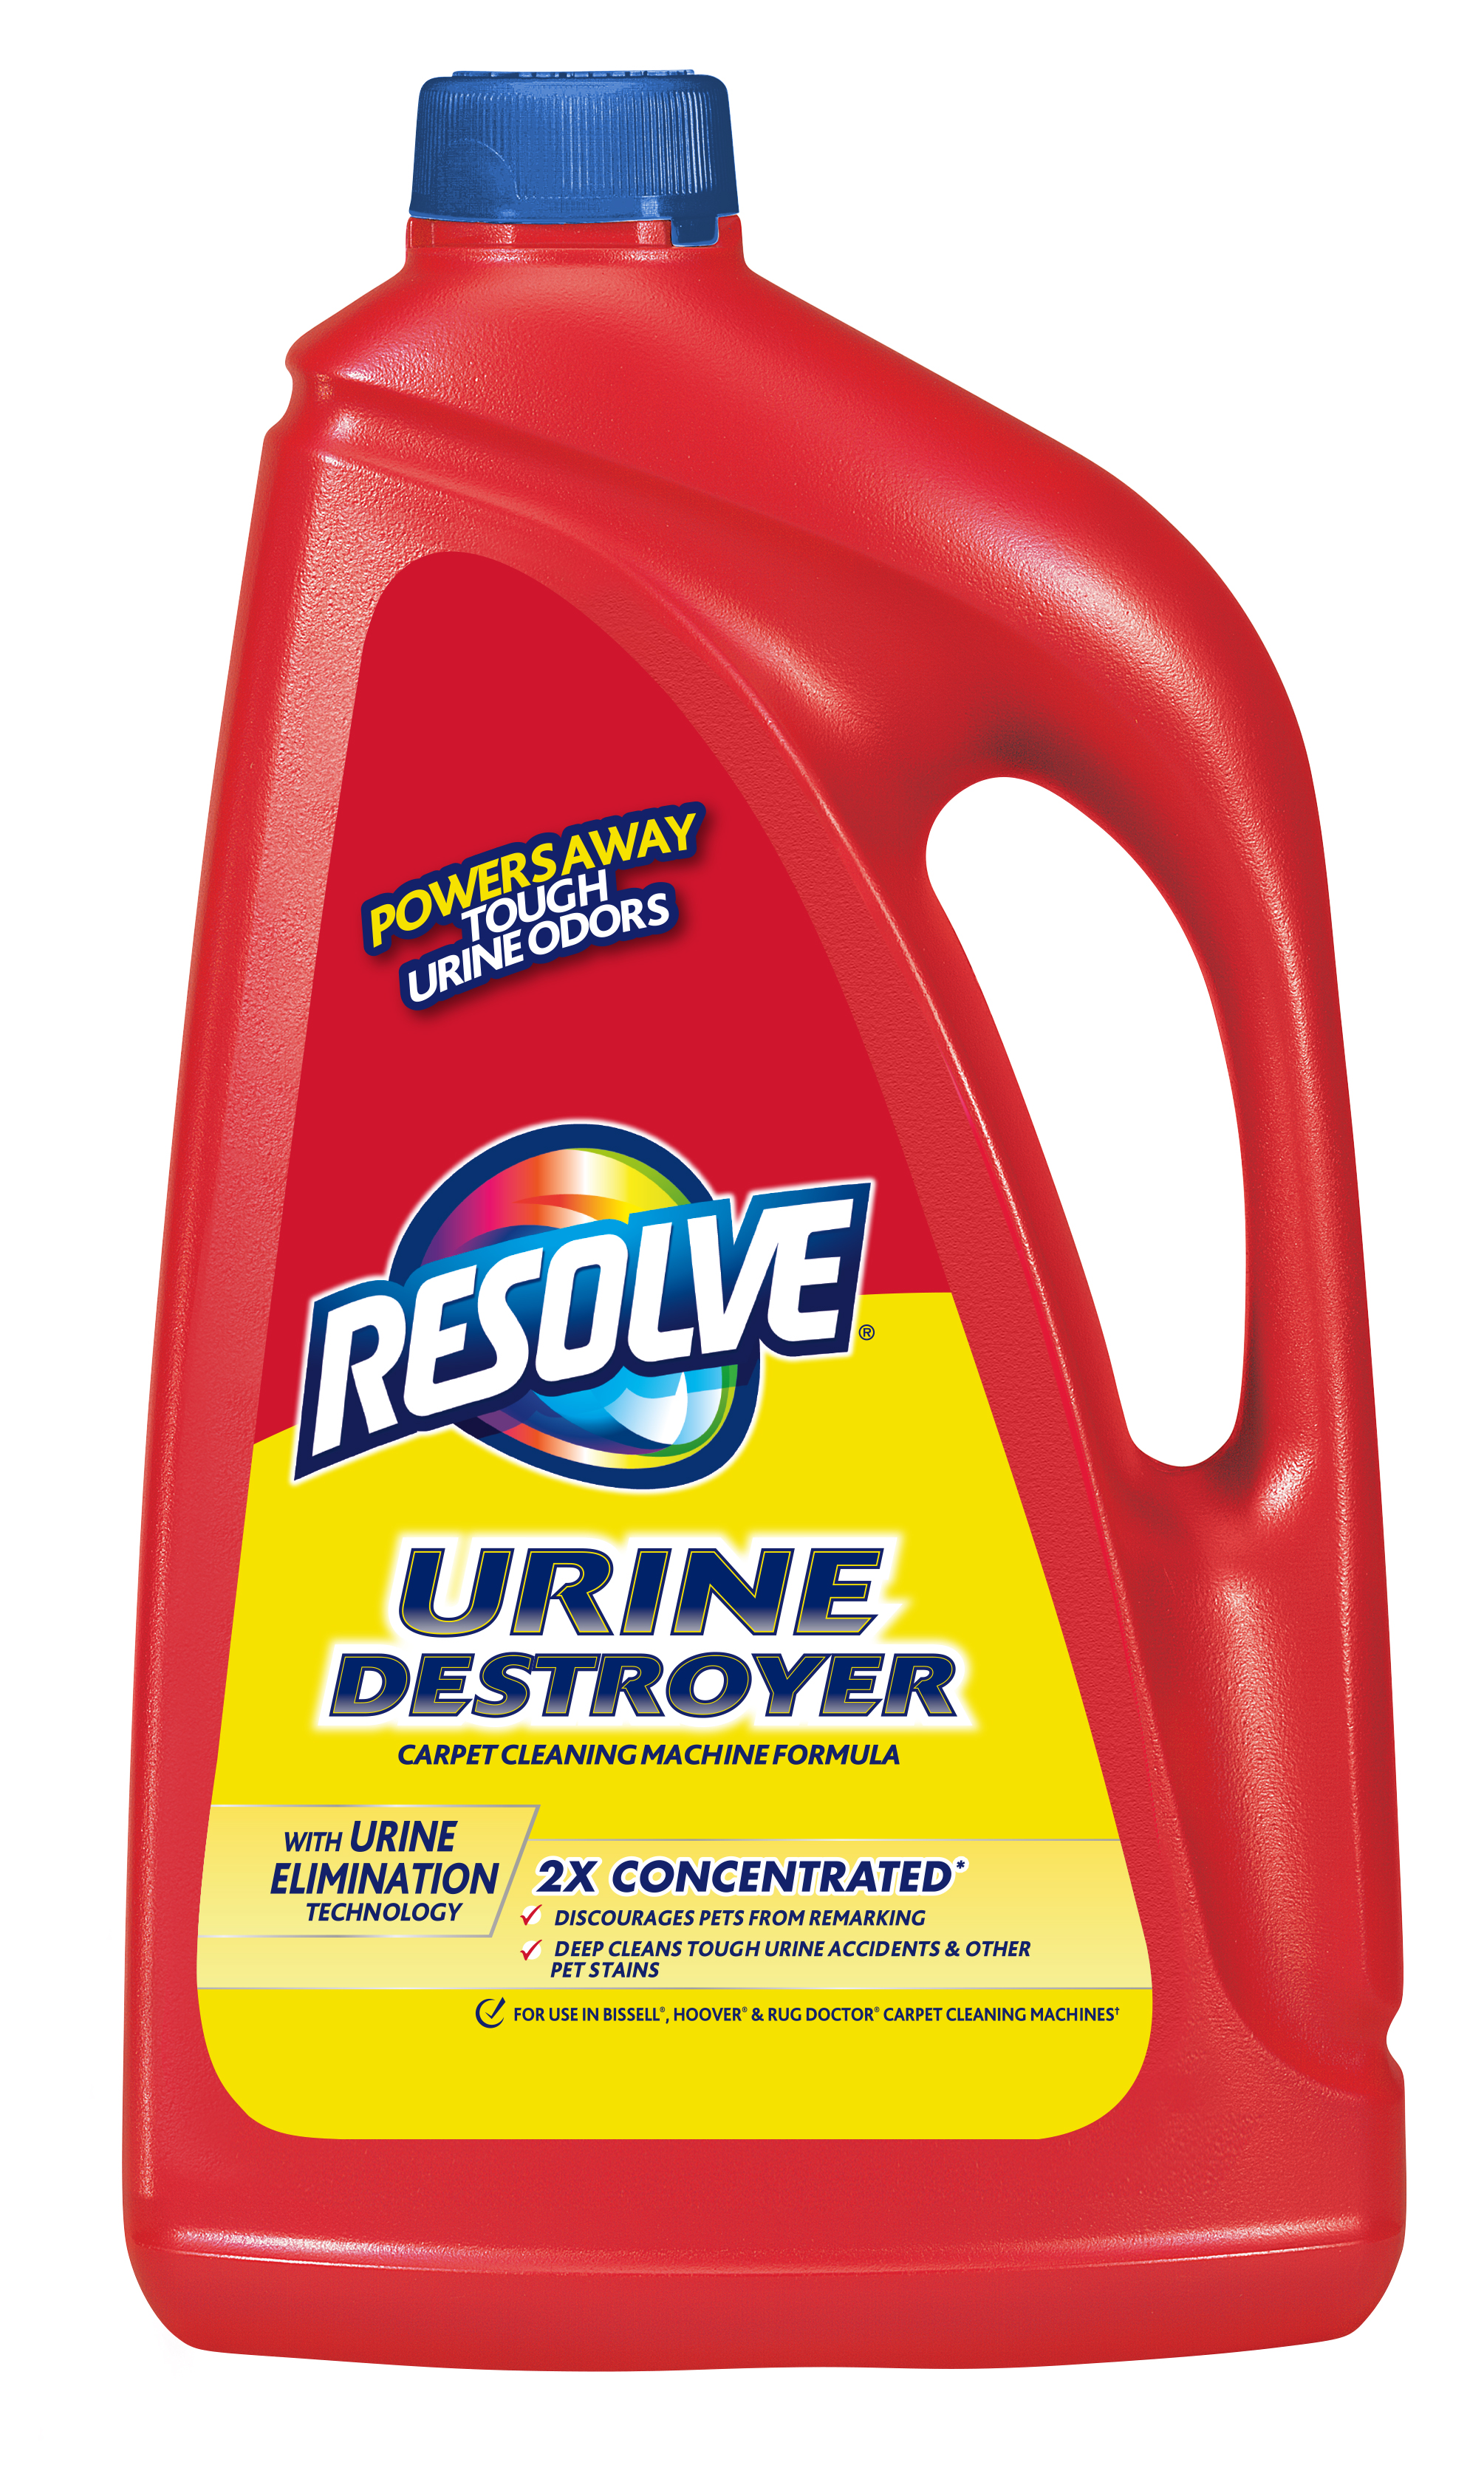 RESOLVE® Carpet 2X Concentrate for Steam Urine Destroyer